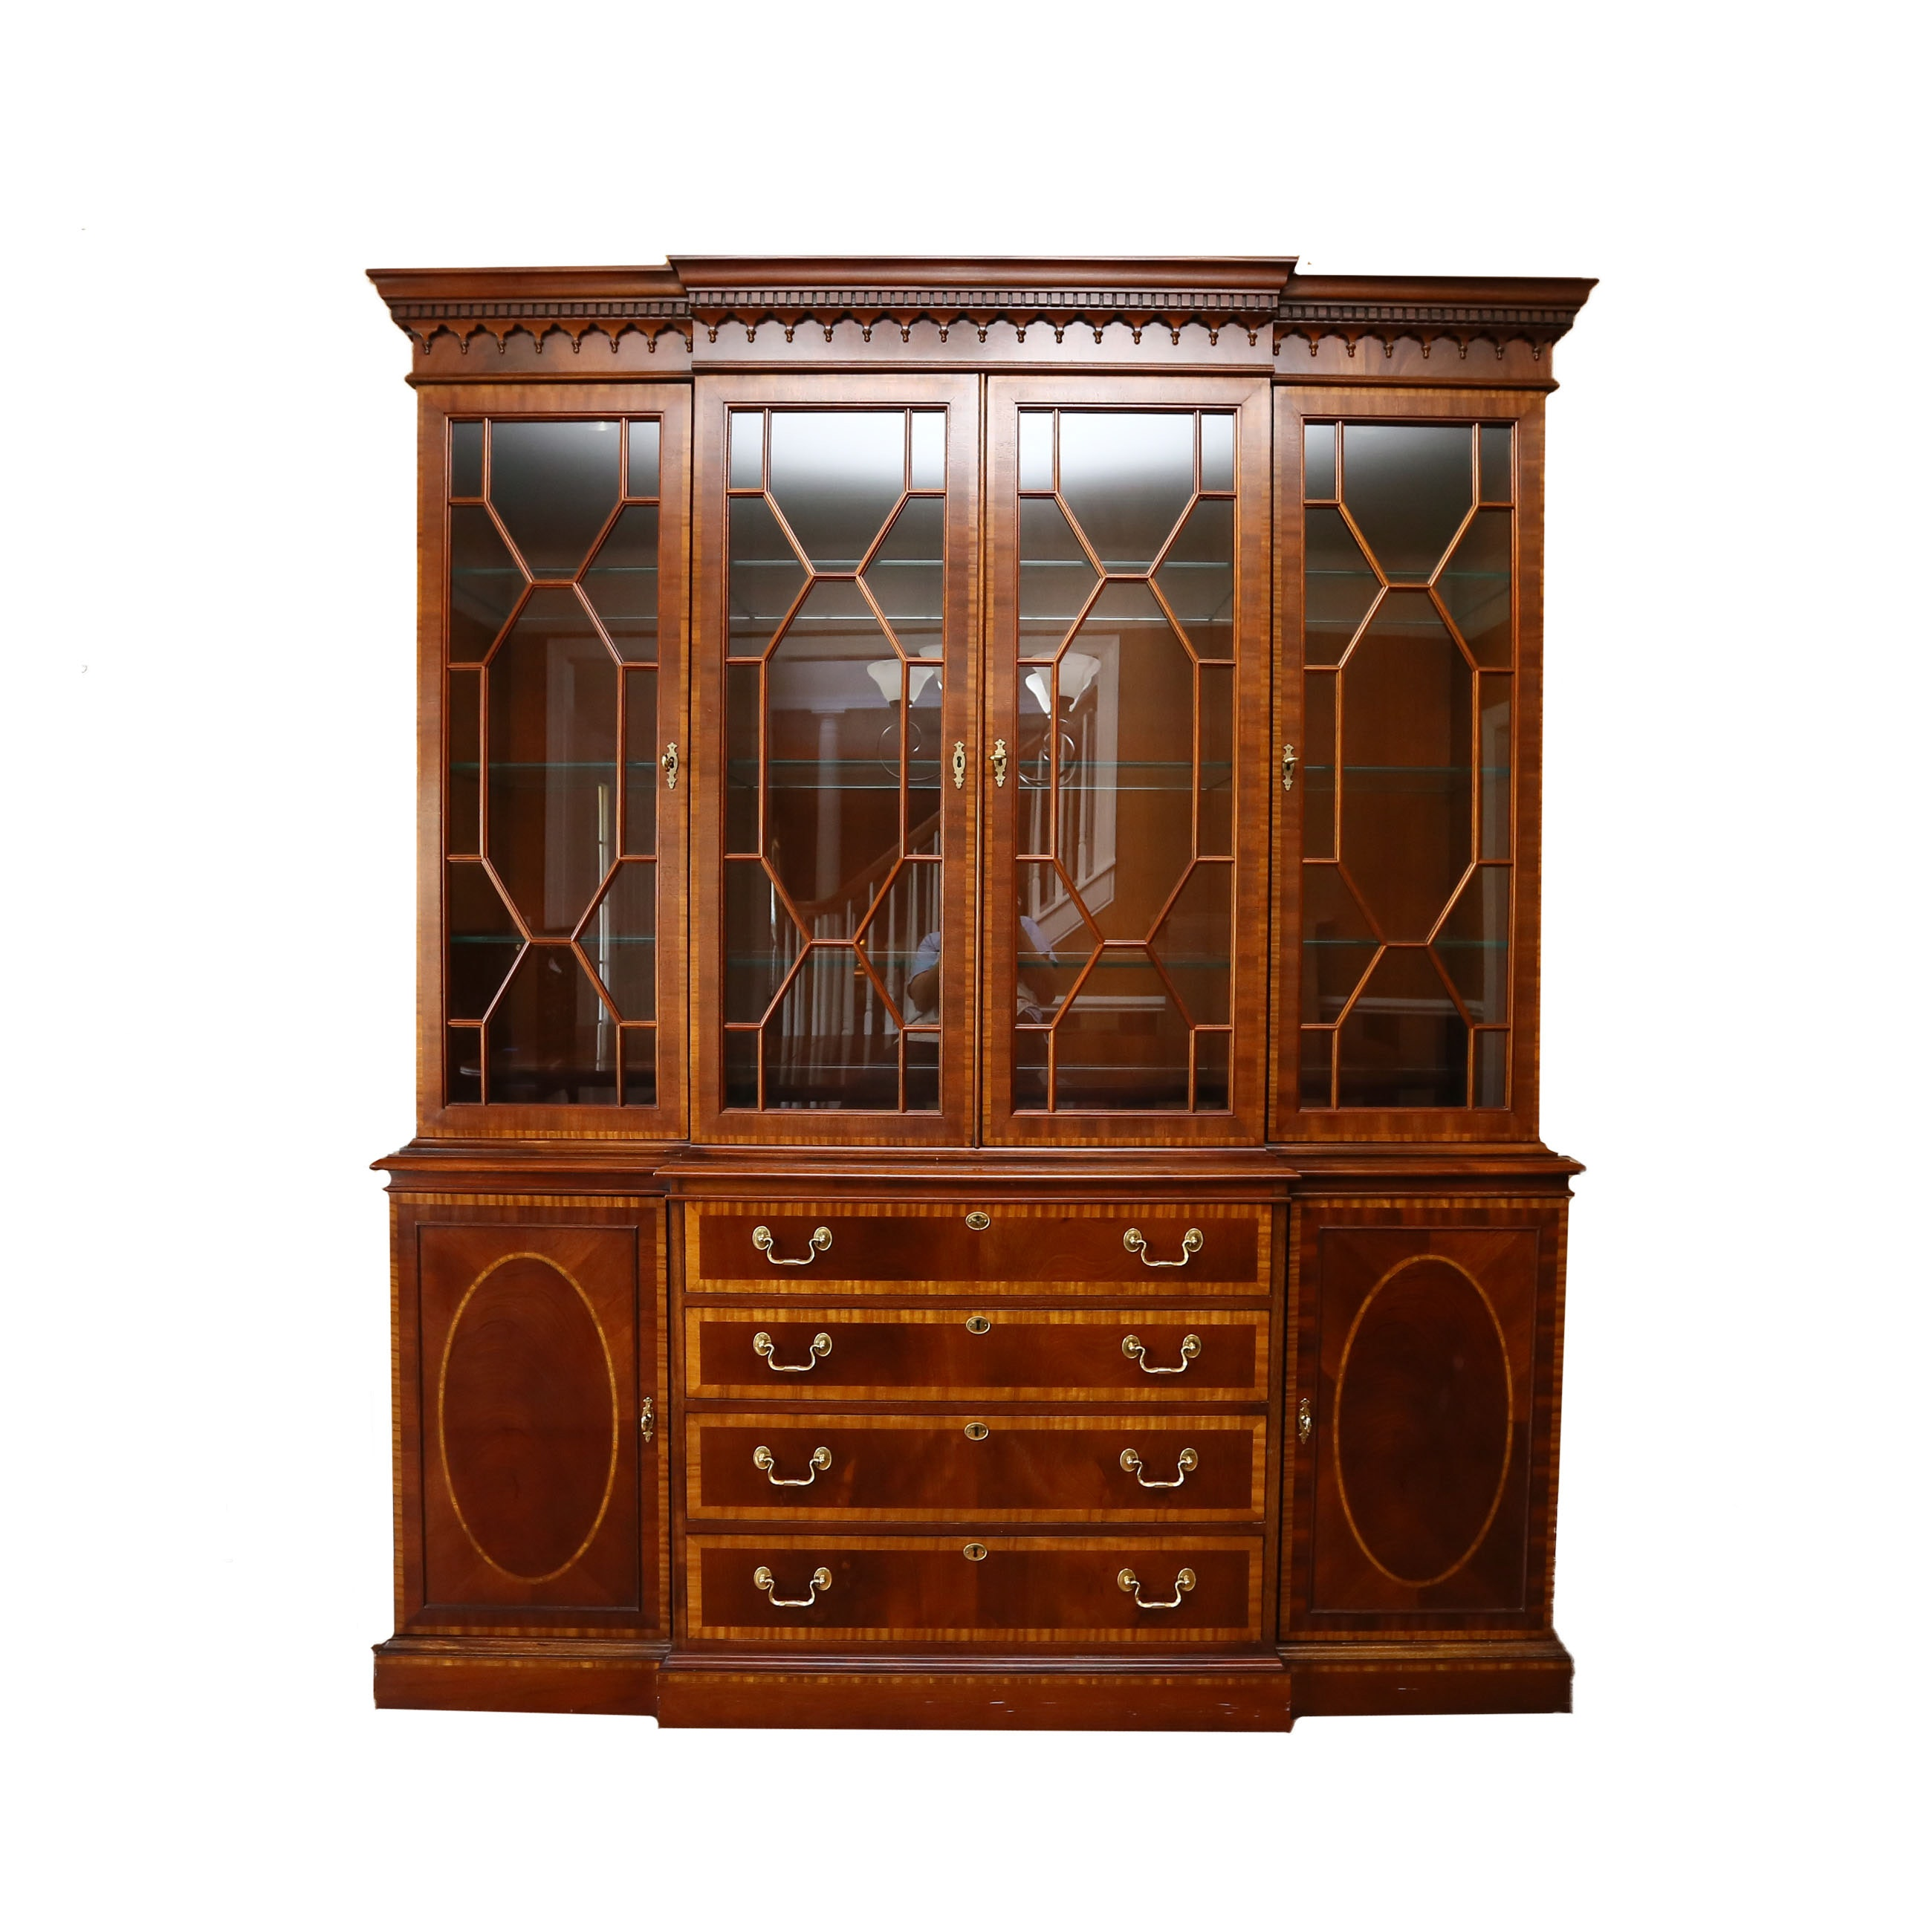 Mahogany Breakfront China Cabinet by Hickory Chair Furniture Co.